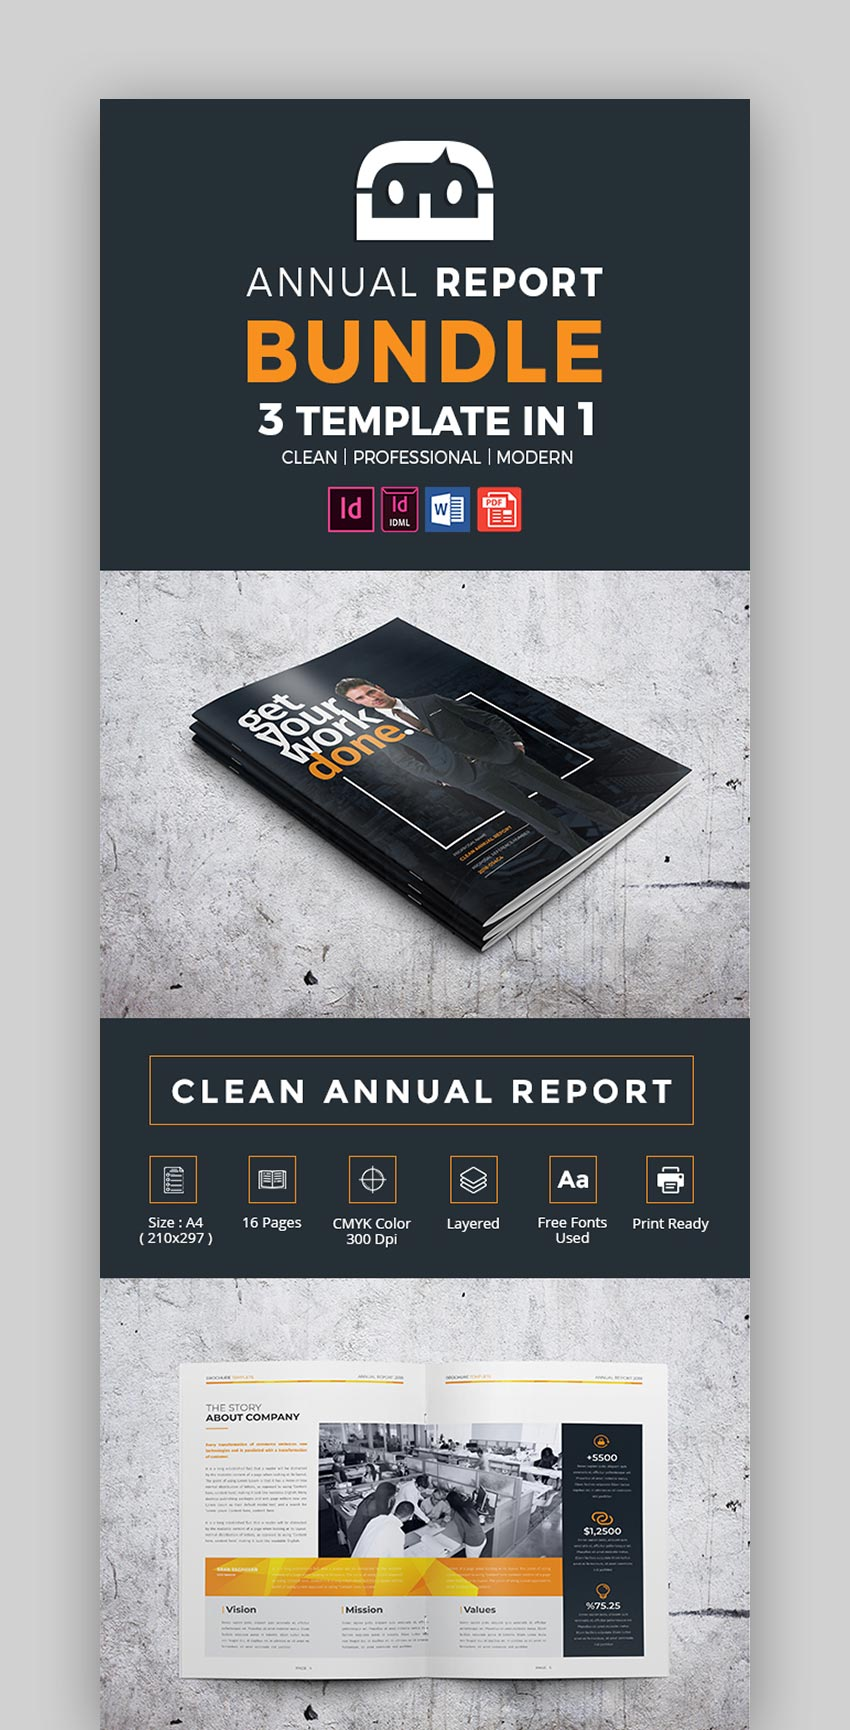 Clean Annual Report Bundle - 3 templates in 1